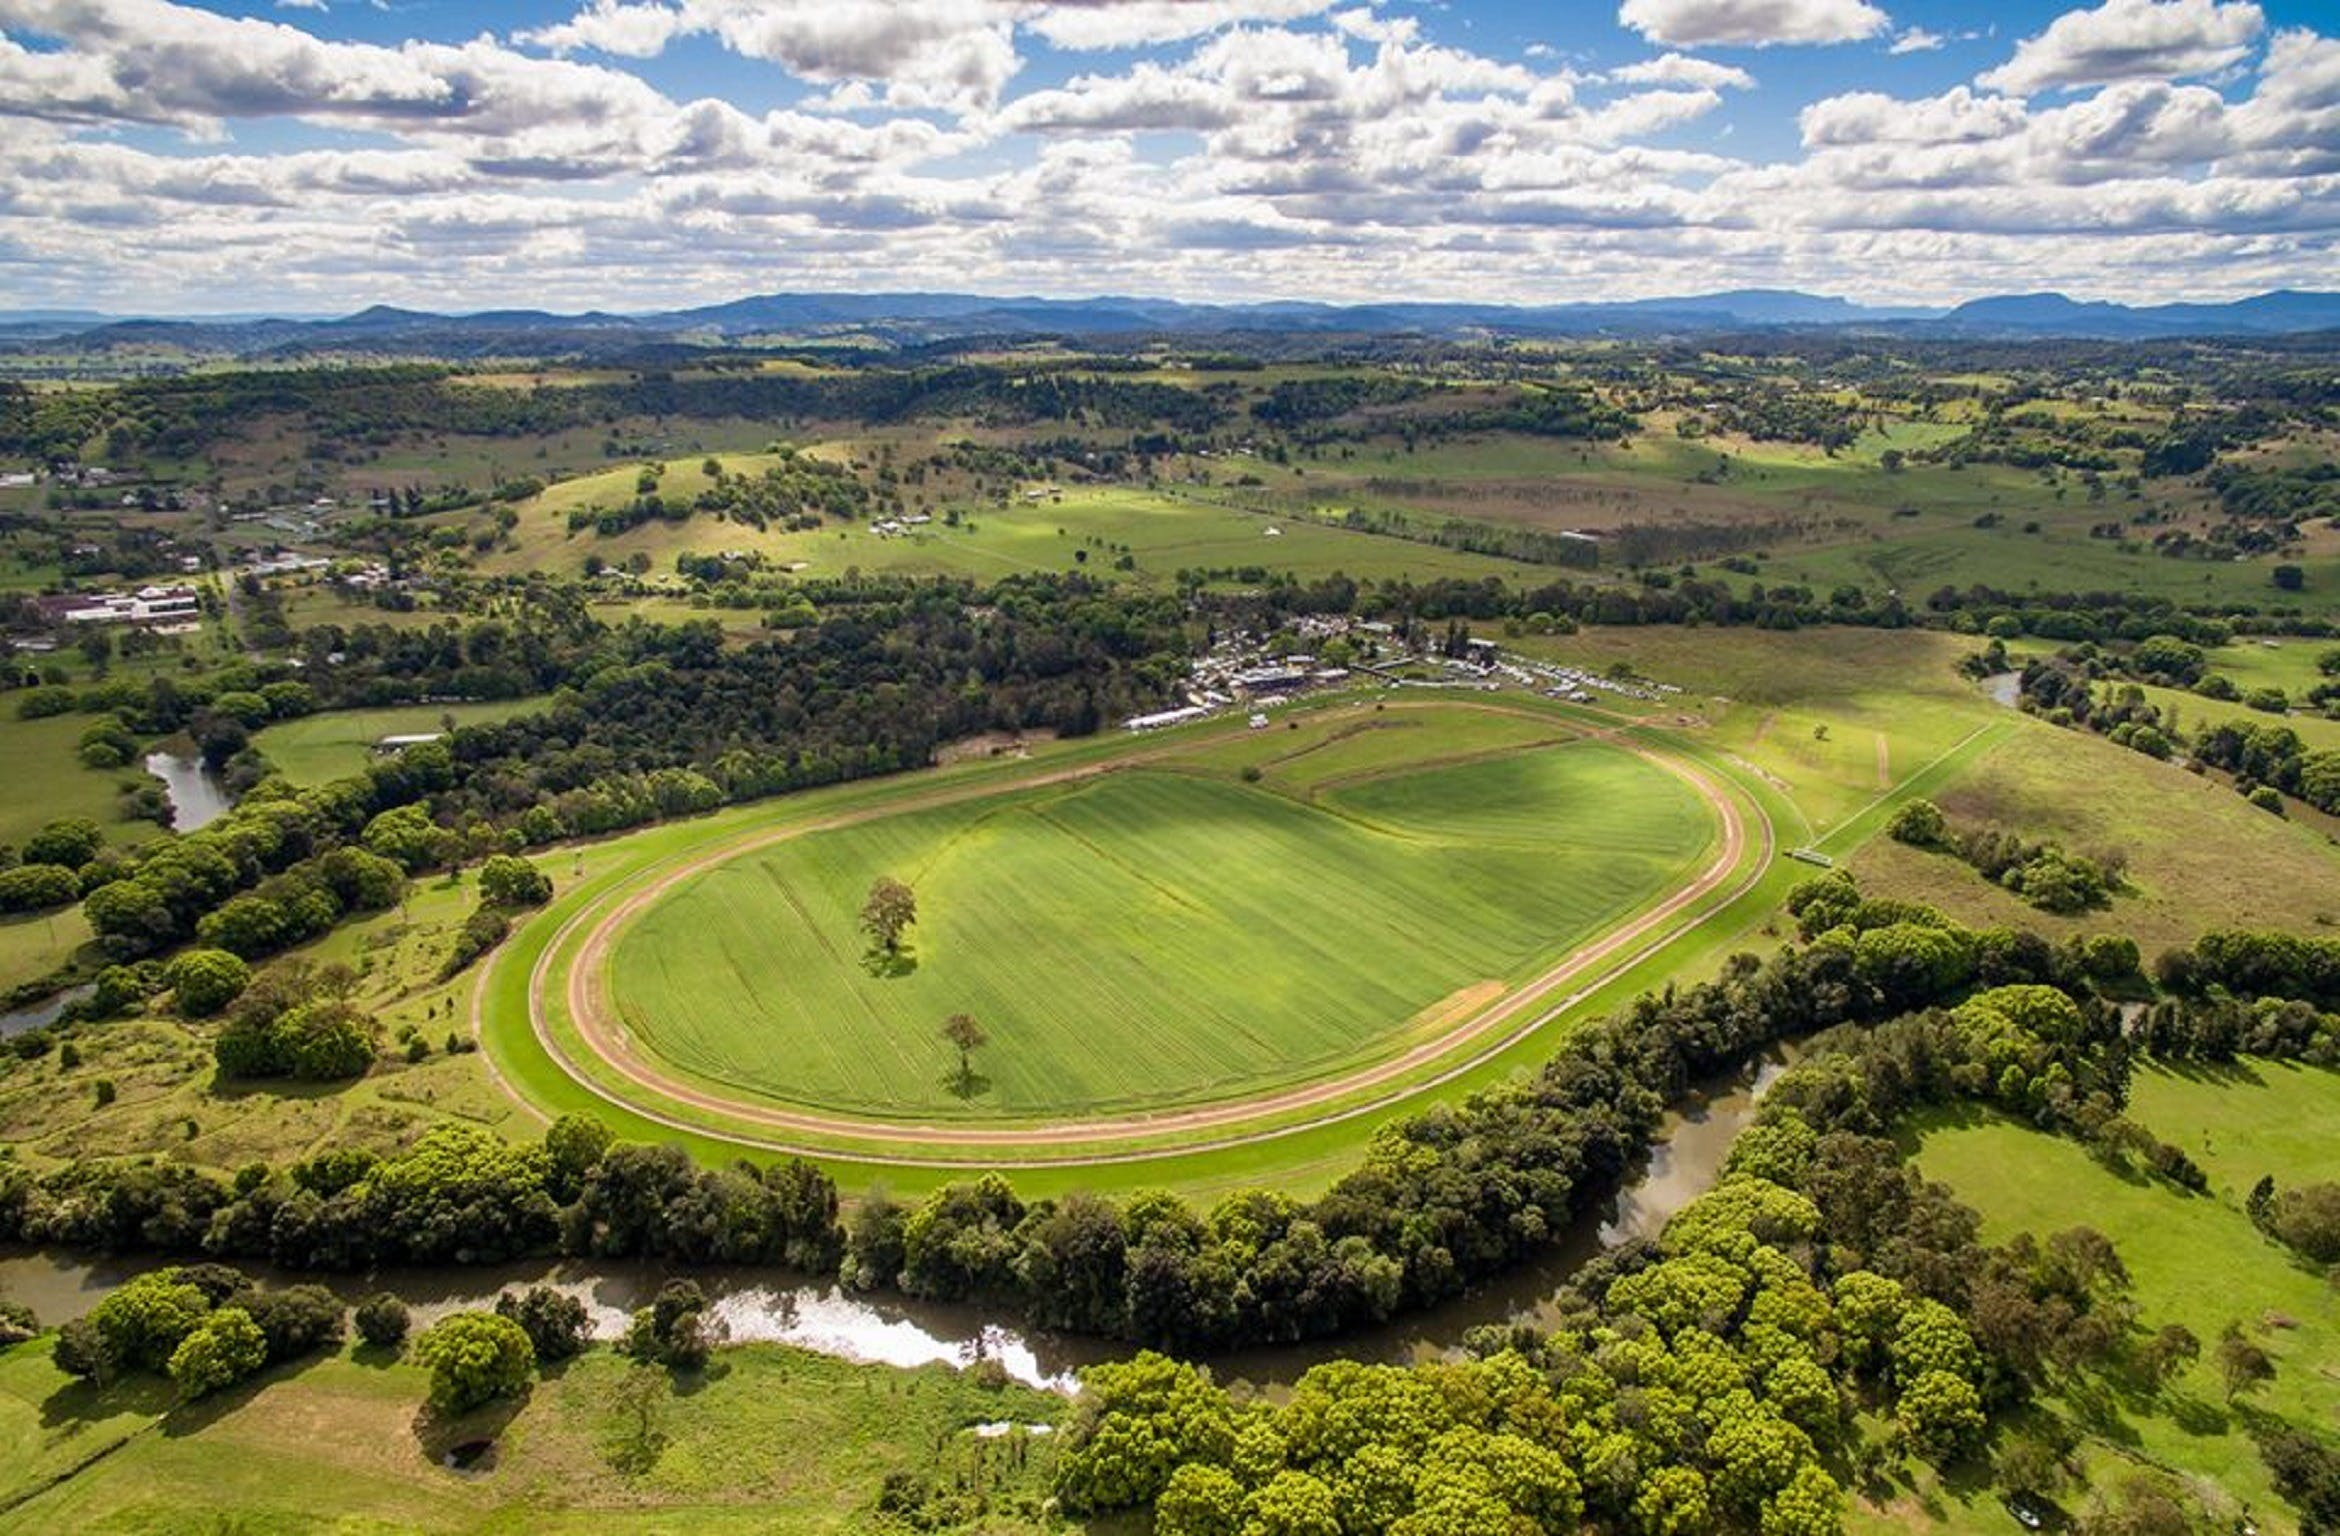 The OBrien Electrical and Plumbing Lismore Cup - Tourism Canberra